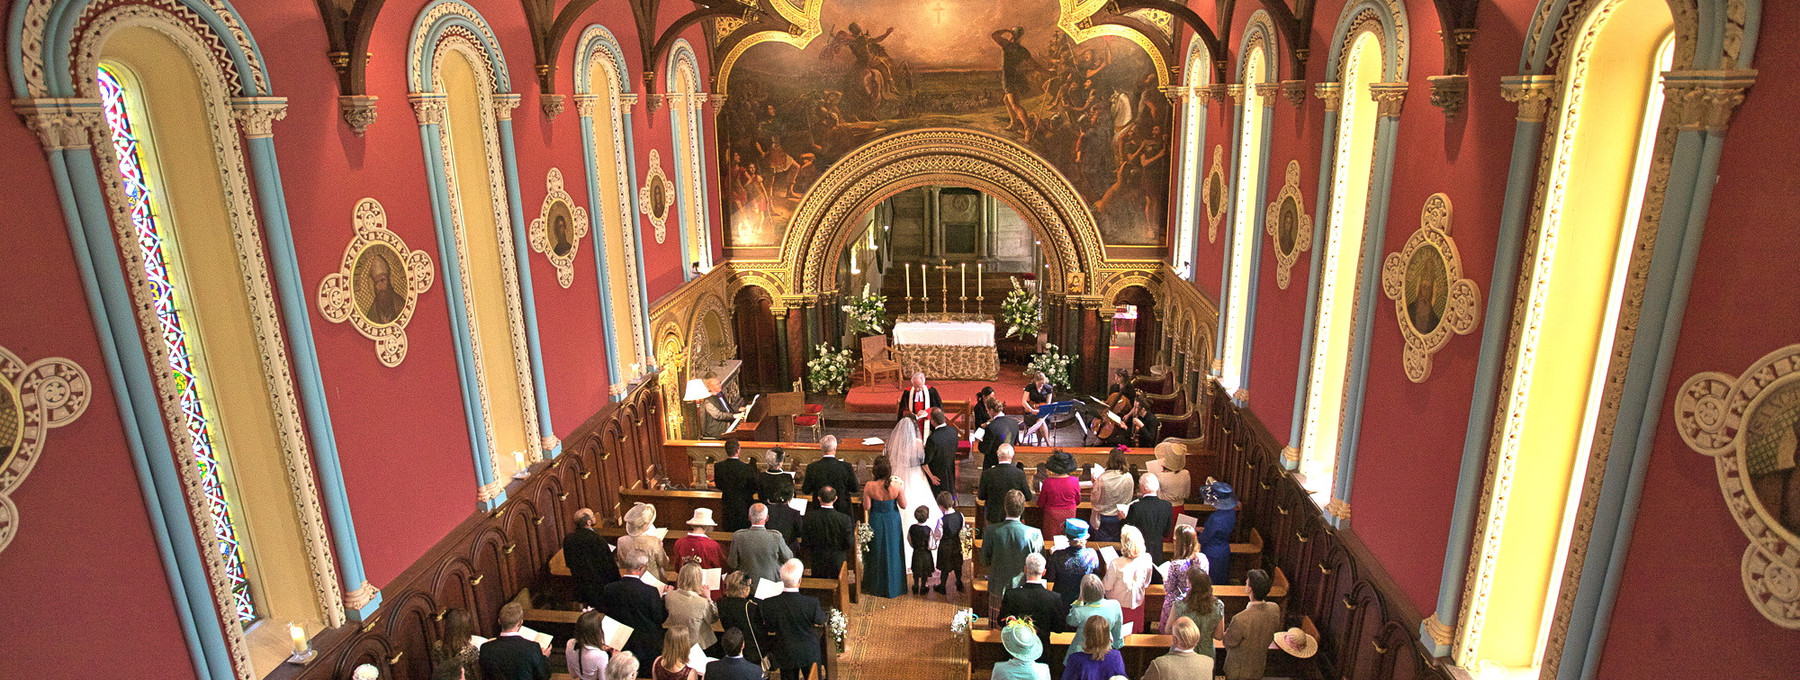 Wedding ceremony at Murthly estate chapel - Vows are promised in the grandeur of the chapel at Murthly estate